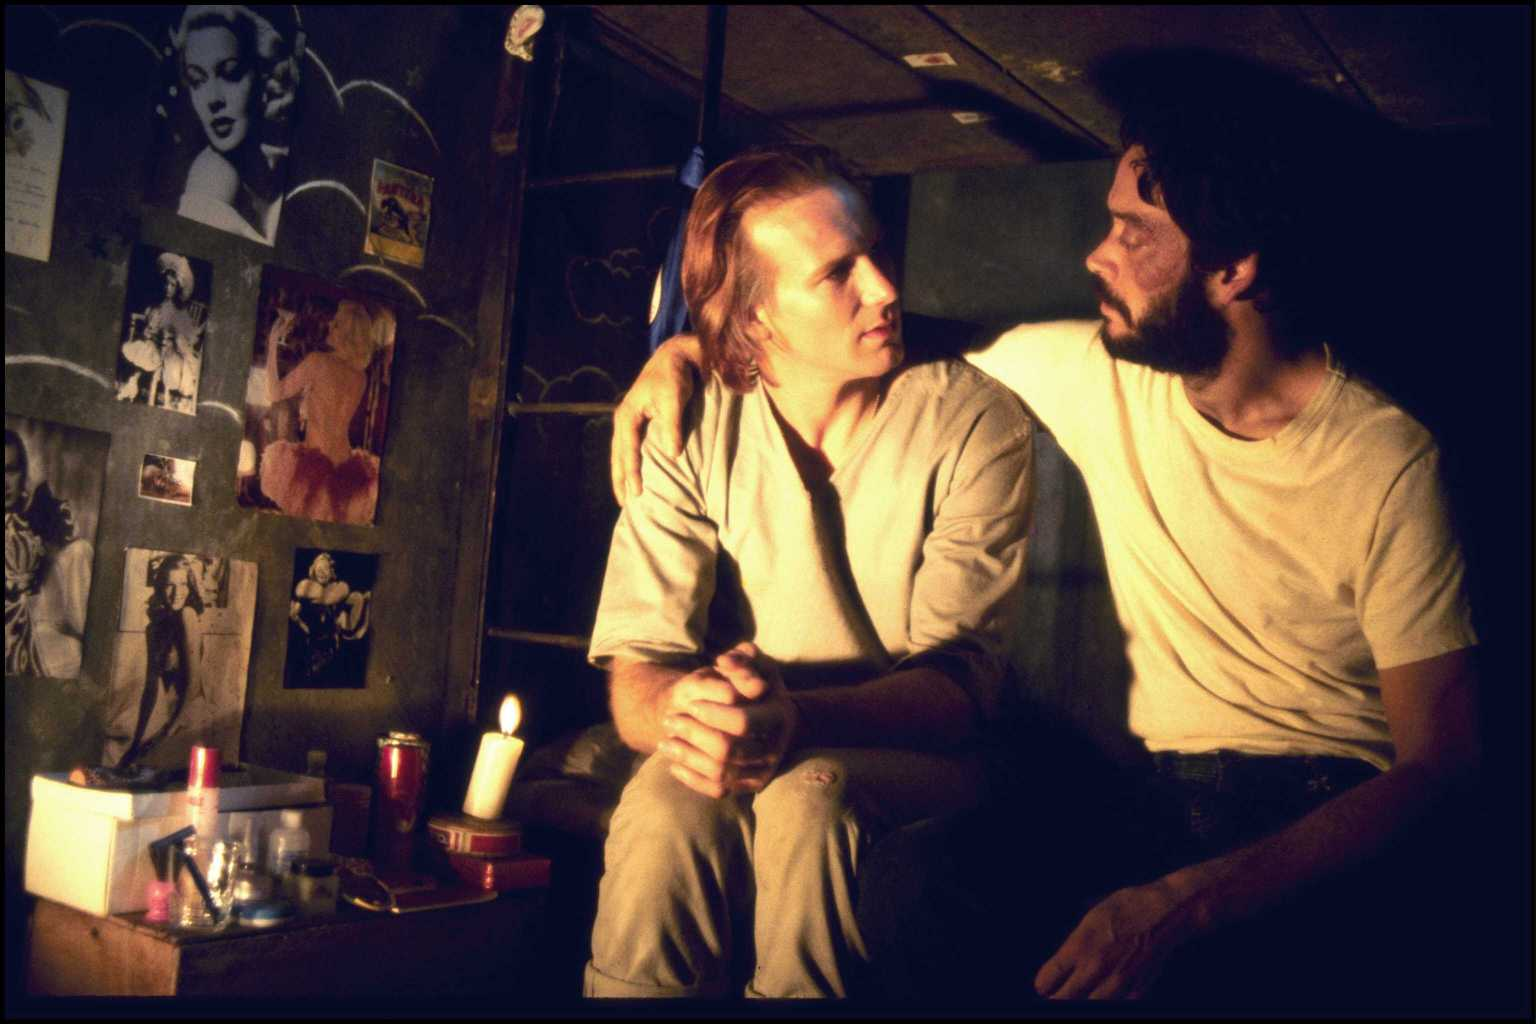 William Hurt and Raul Julia in Kiss of the Spider Woman (HB Filmes)